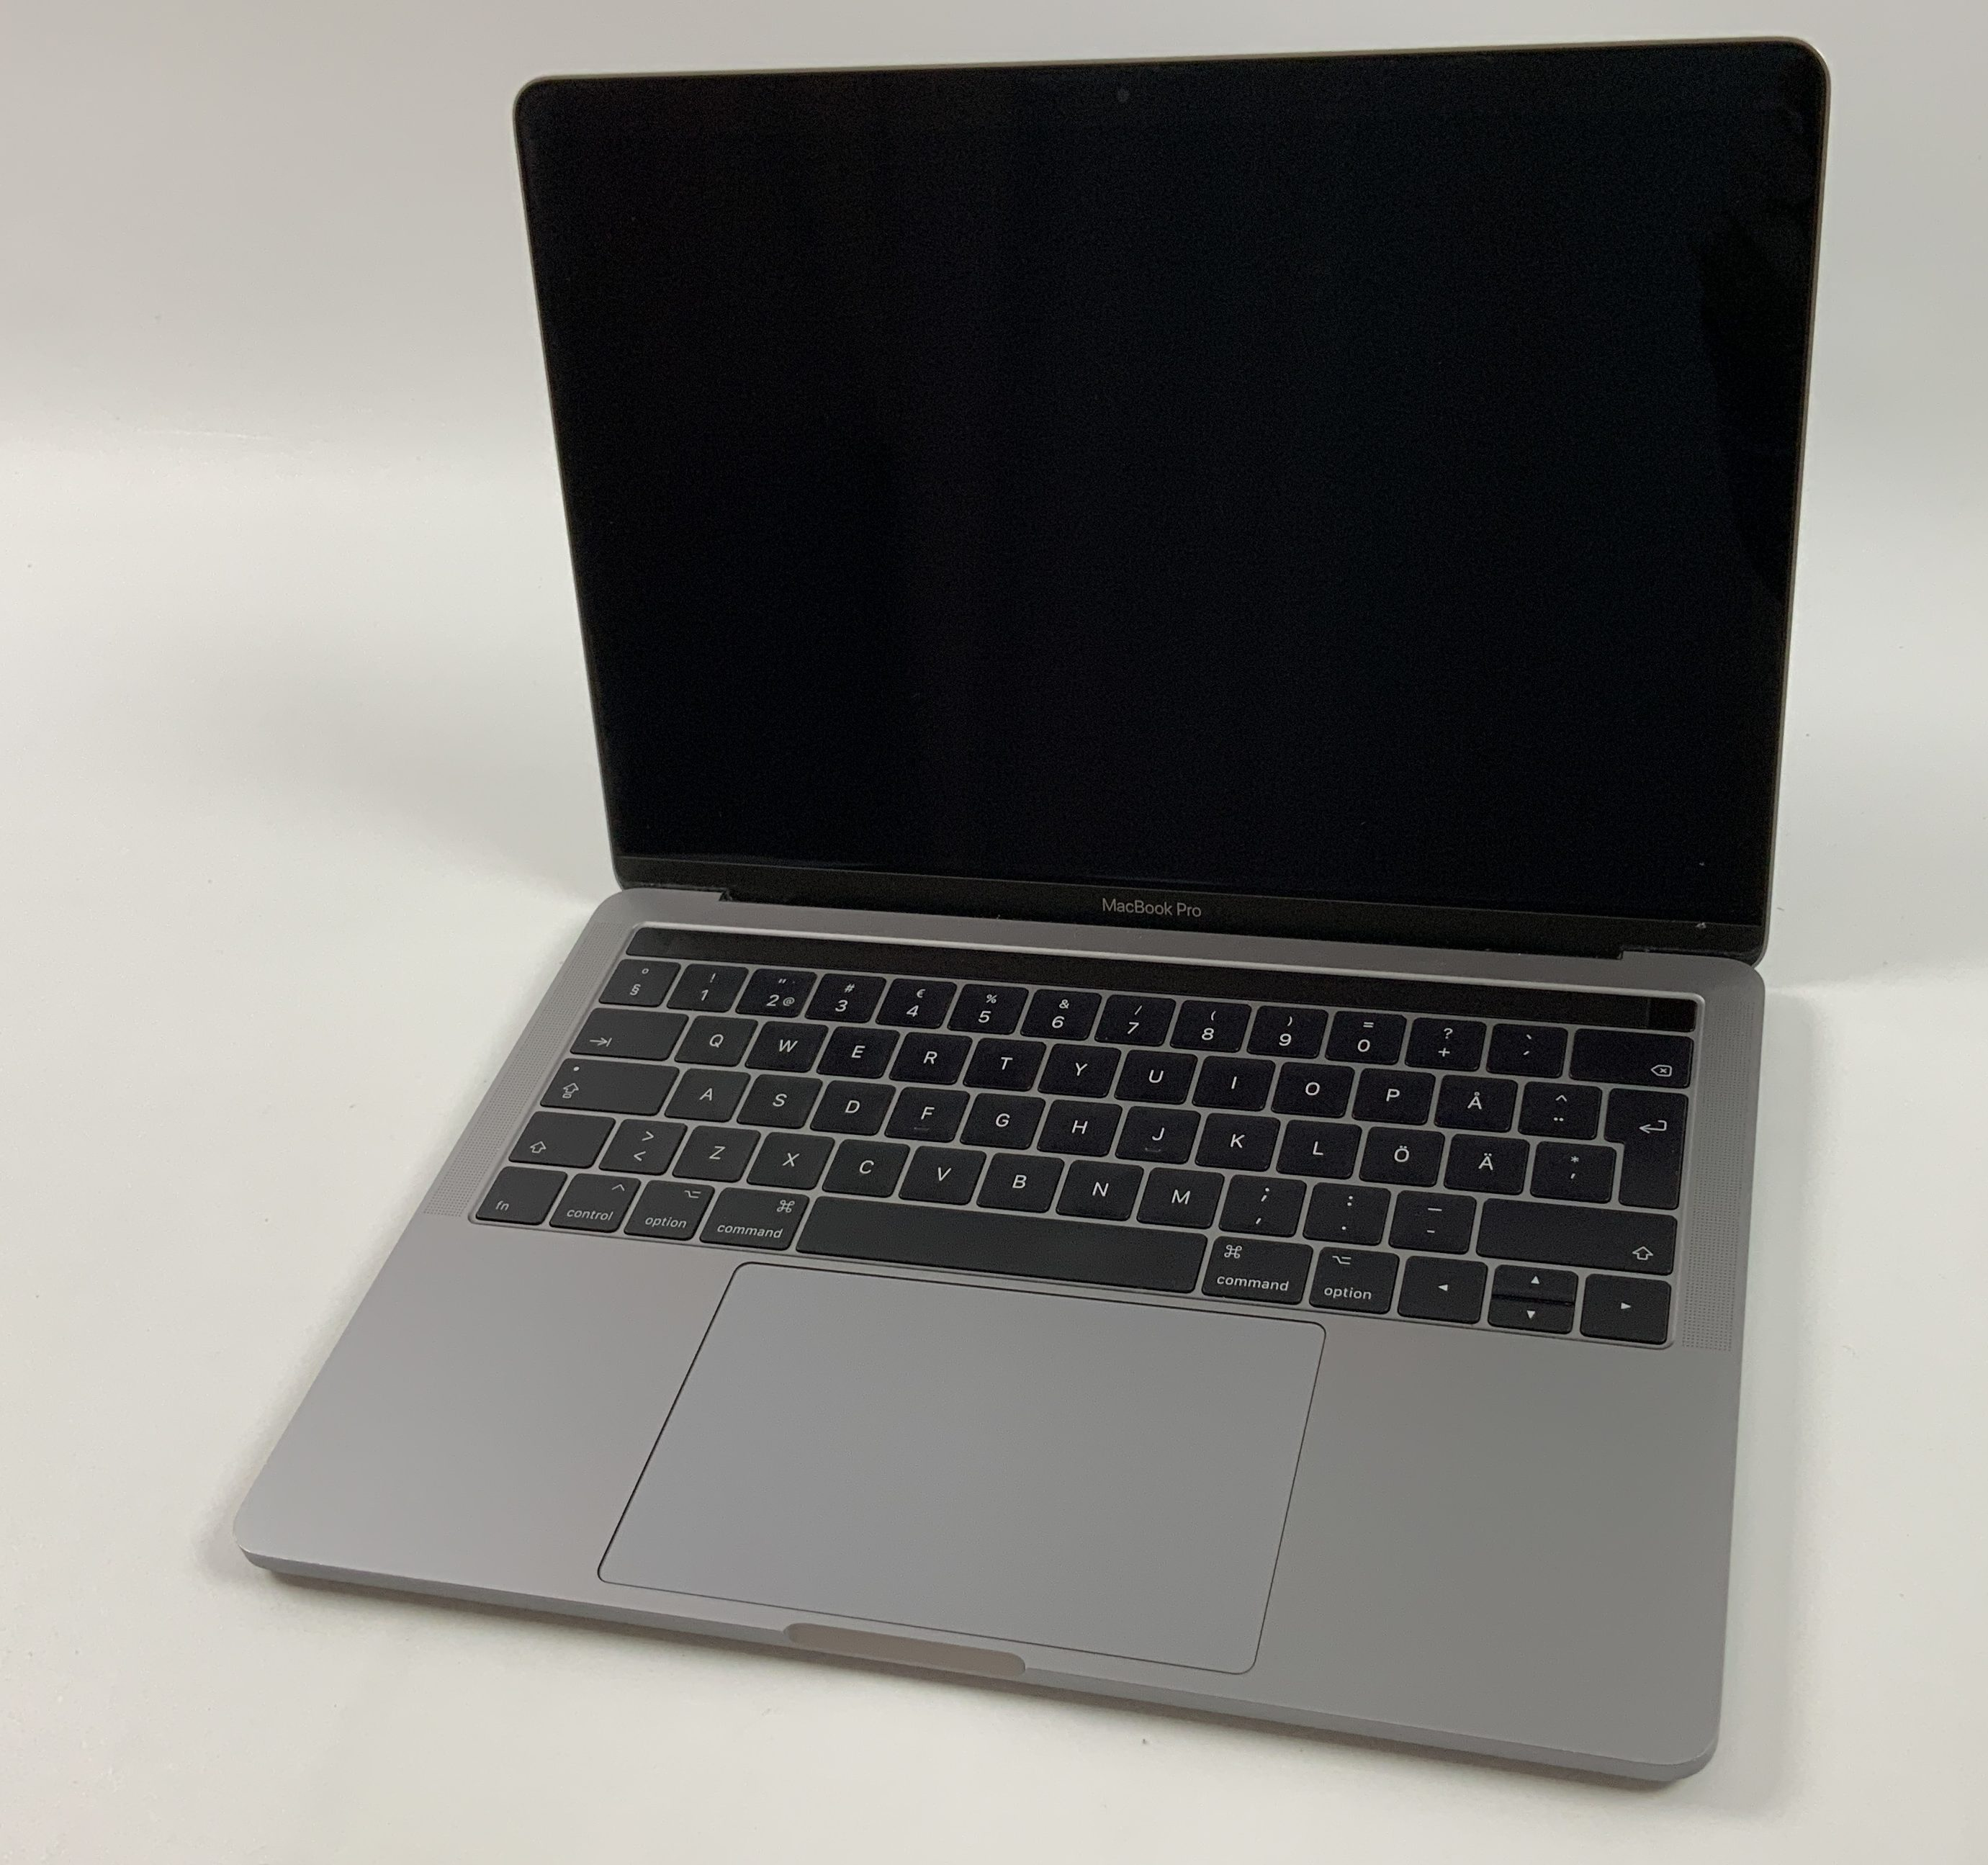 "MacBook Pro 13"" 4TBT Mid 2017 (Intel Core i5 3.1 GHz 8 GB RAM 256 GB SSD), Space Gray, Intel Core i5 3.1 GHz, 8 GB RAM, 256 GB SSD, Kuva 1"